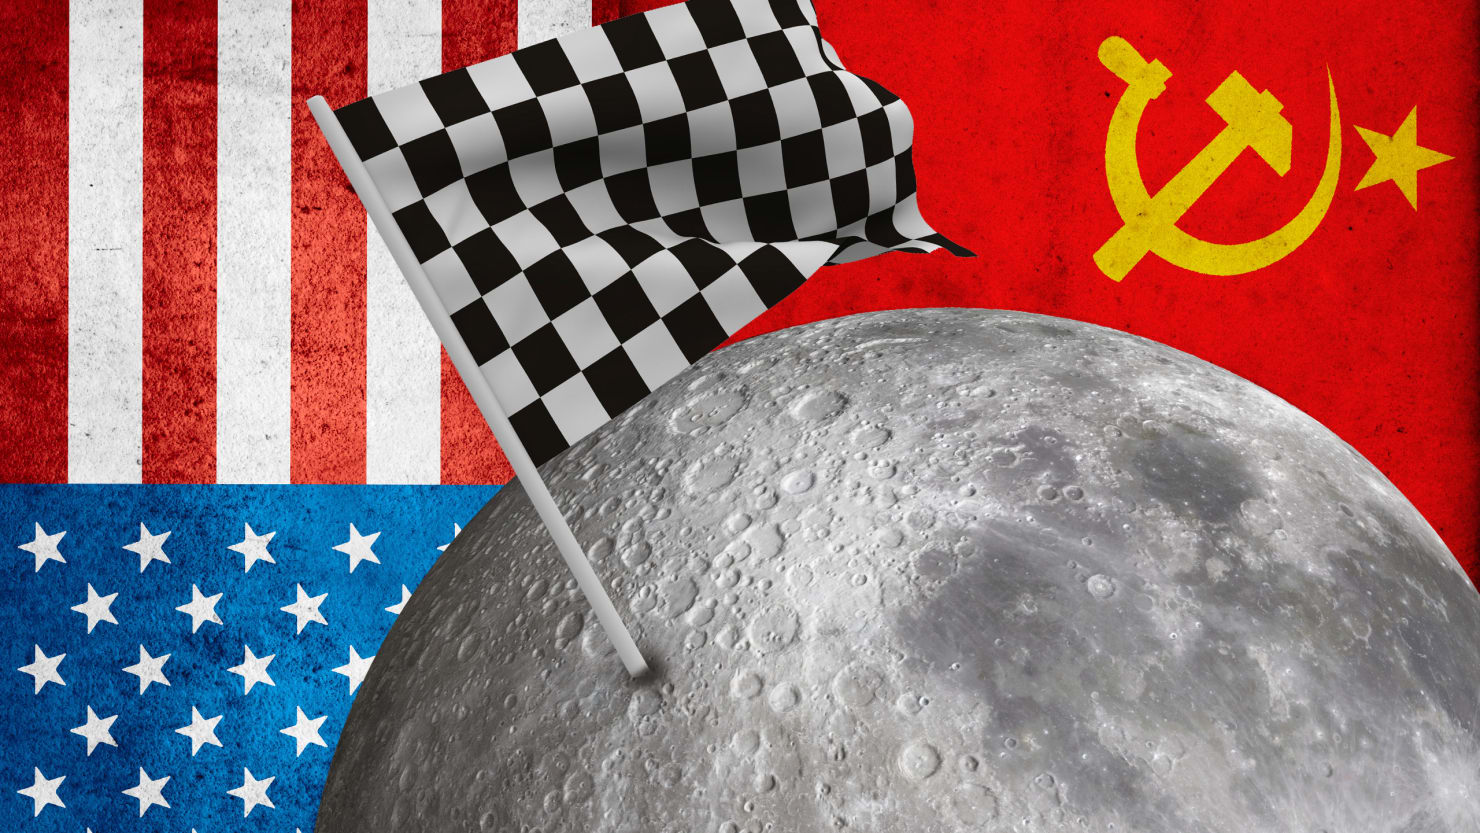 Who was the first to travel to outer space Space battles between the USSR and the USA